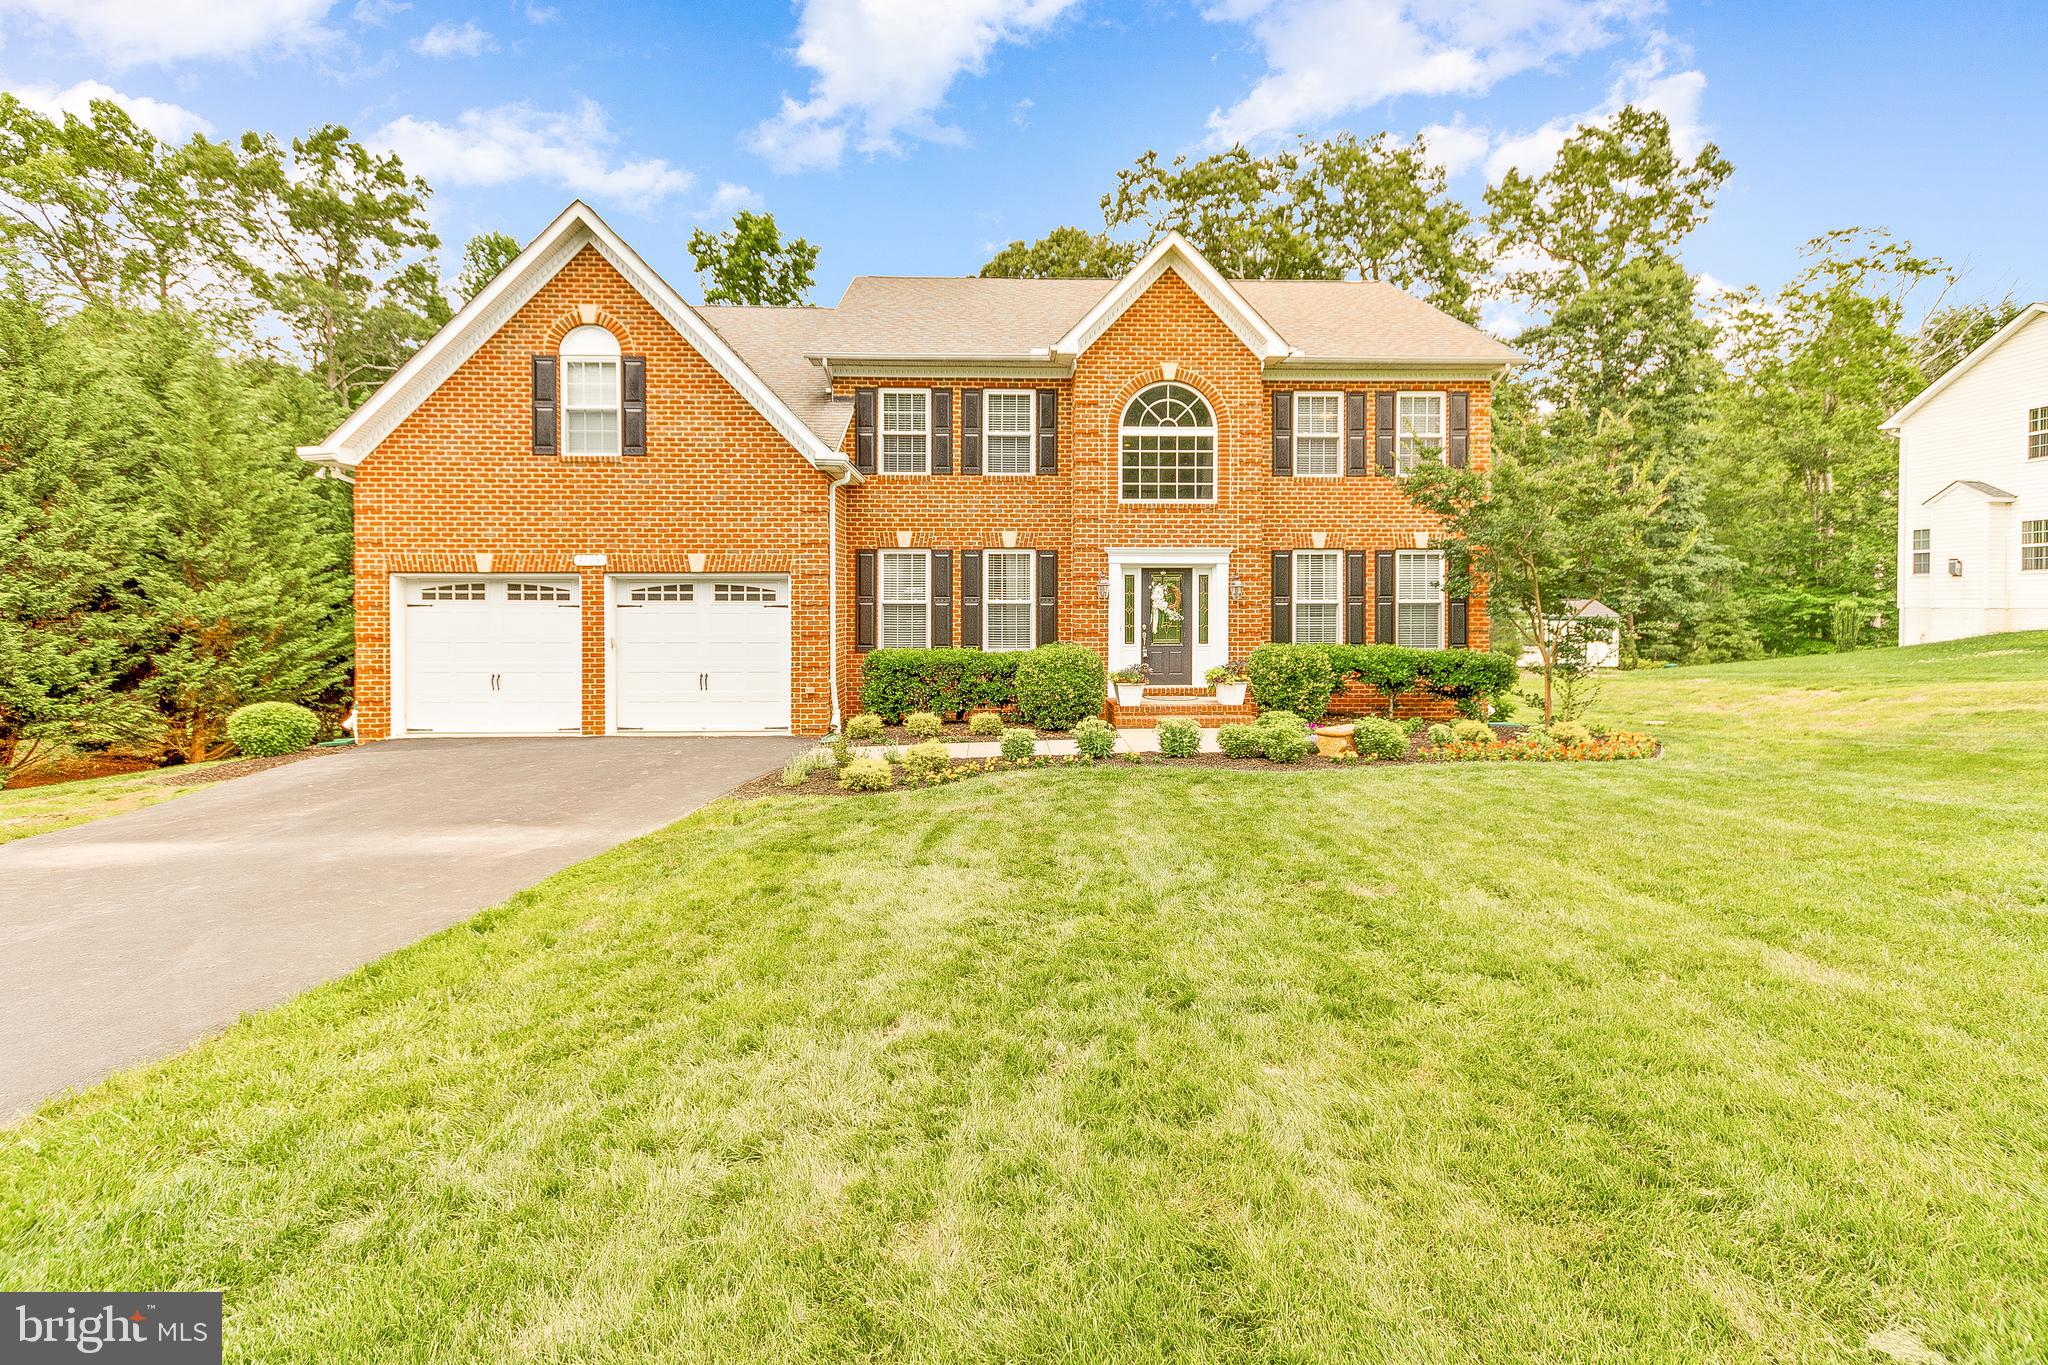 IMMACULATE!! This well appointed 5 Bedroom 4 Bathroom Colonial with just under 5000 finished square